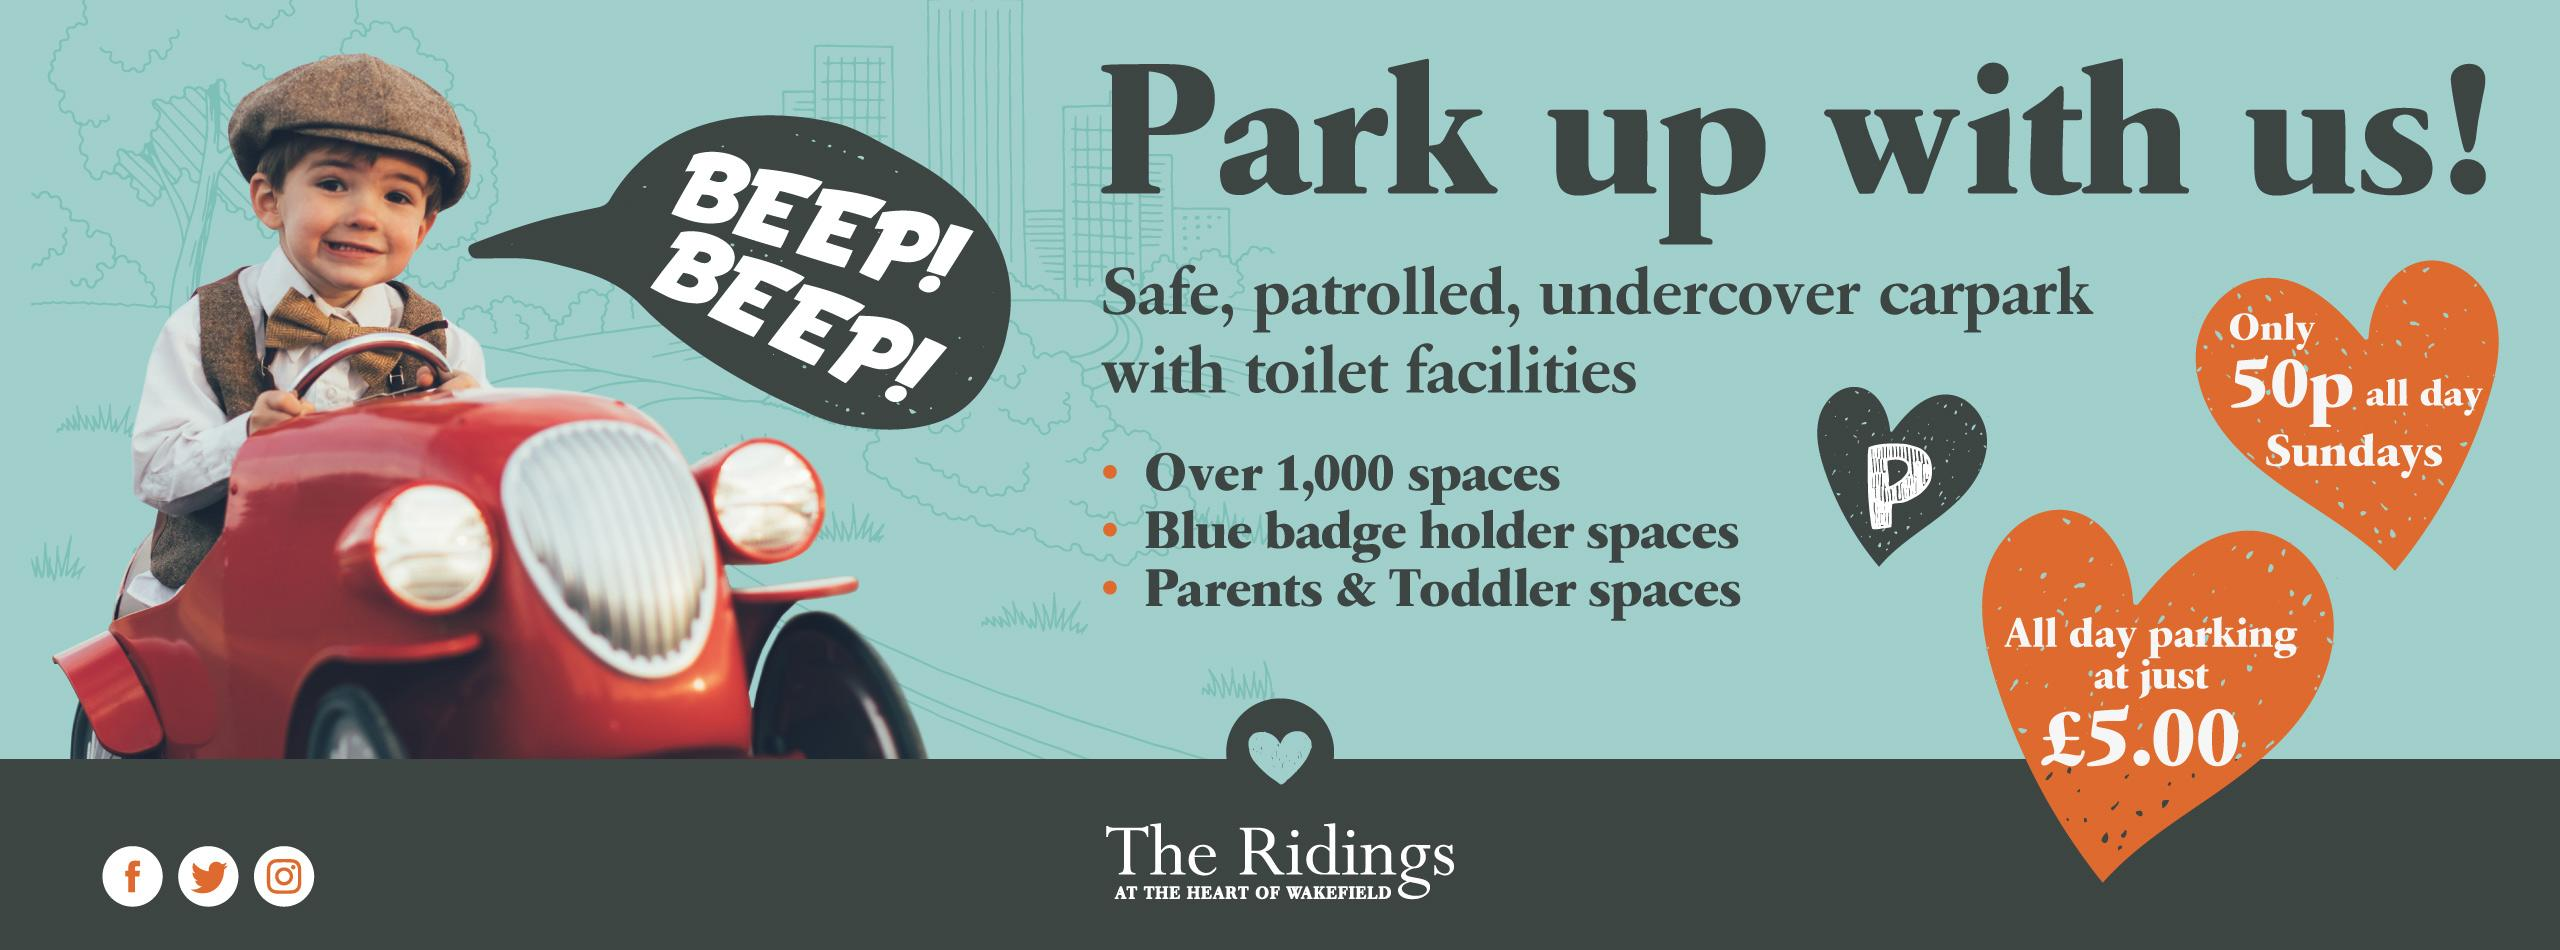 THE-RIDINGS-CAR-PARK-CAMPAIGN_Web-Banner